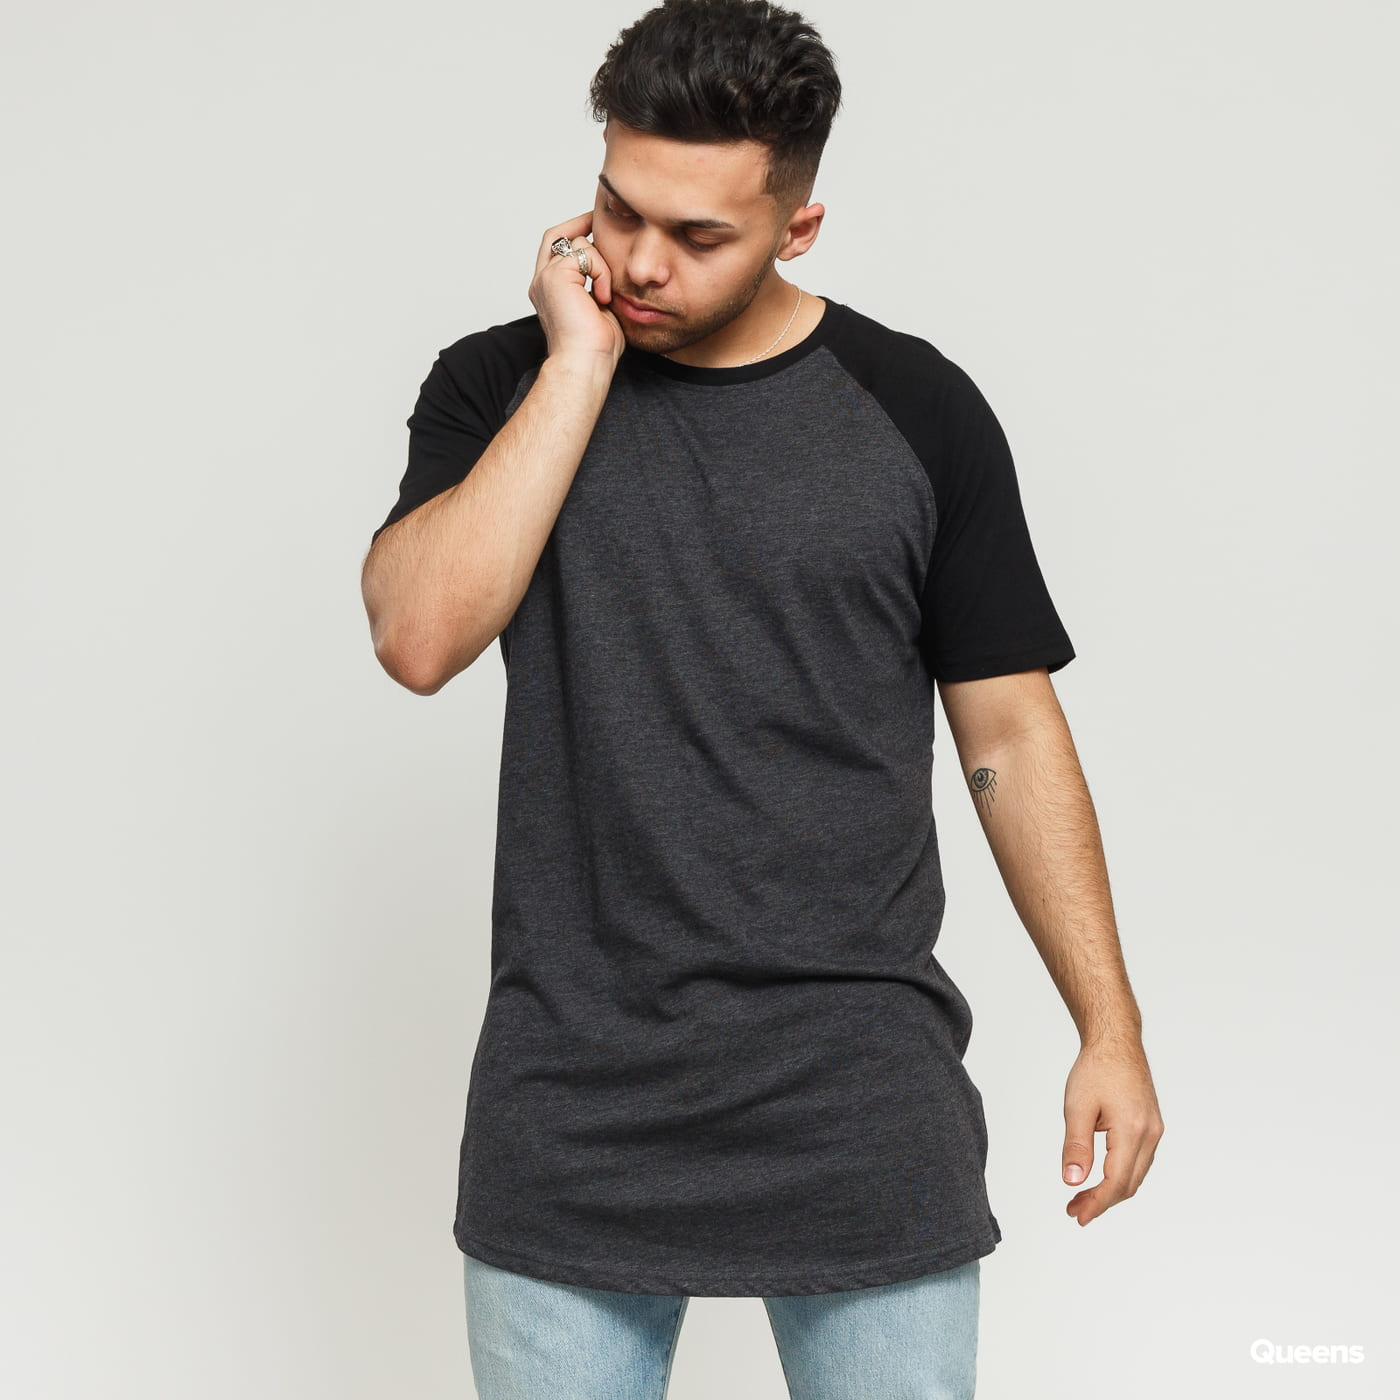 Urban Classics Shaped Raglan Long Tee dunkelgrau / schwarz